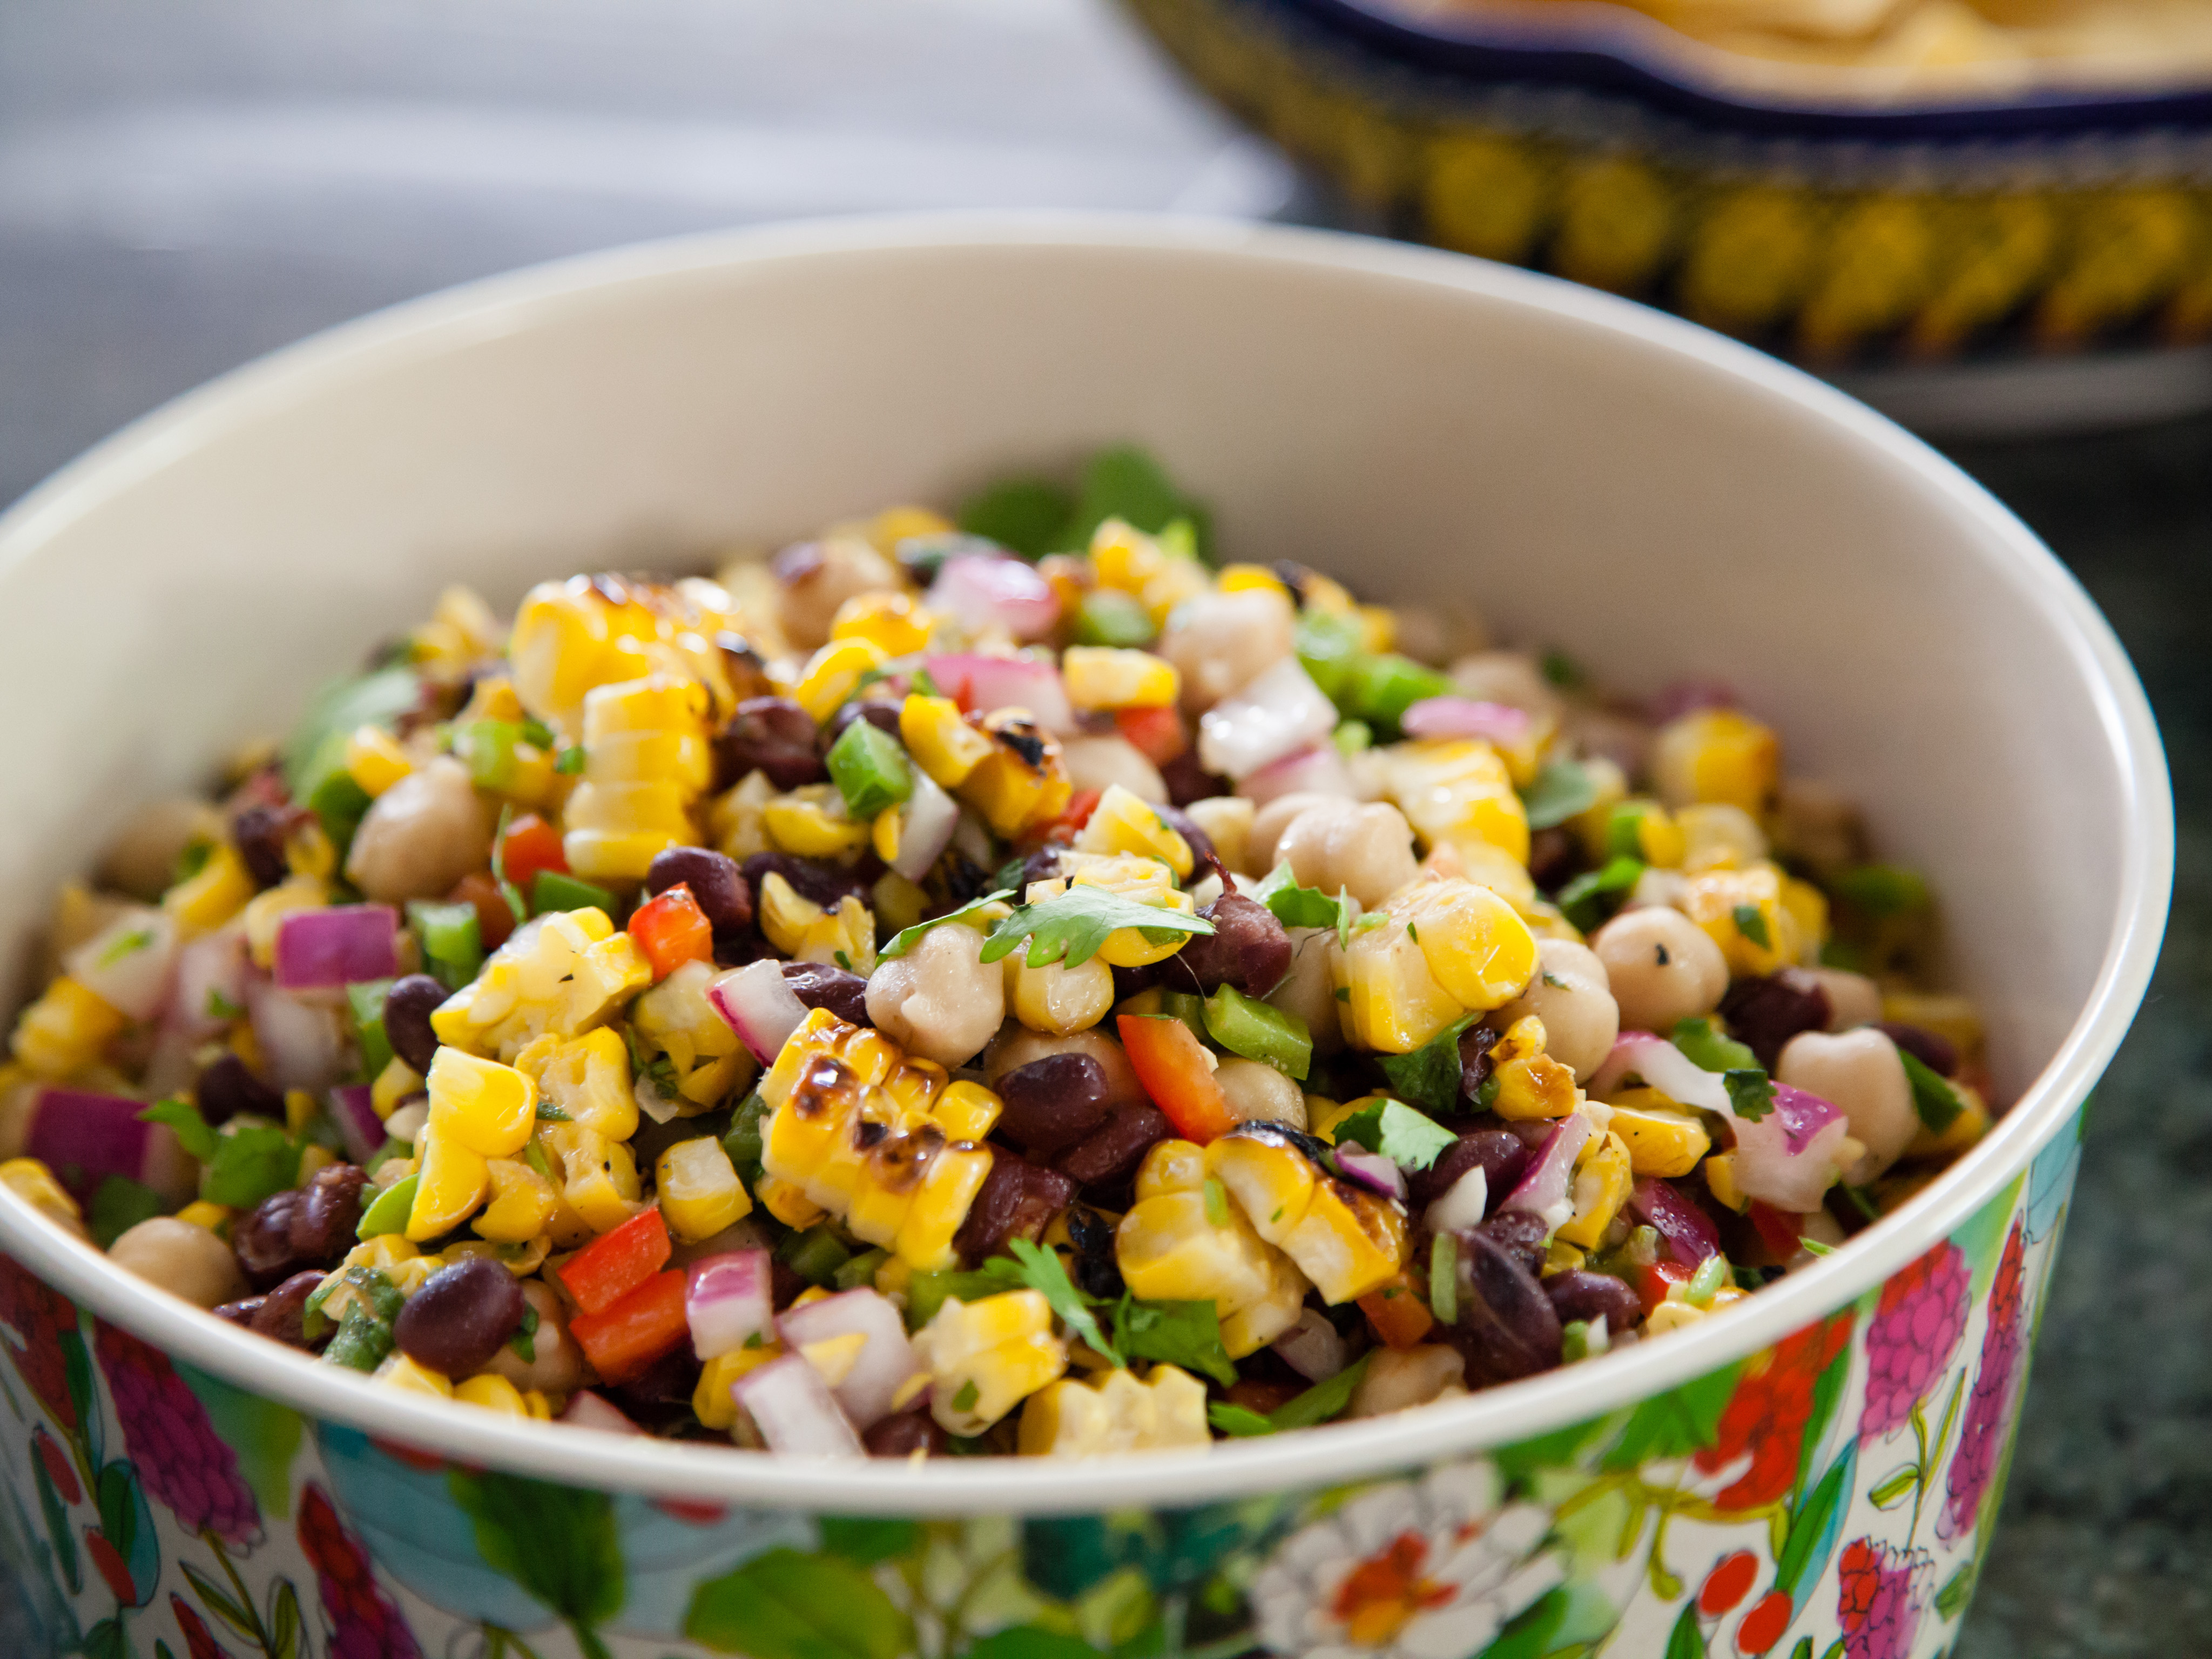 Roasted corn and bean salad, a favorite of host Valerie Bertinelli's stepdaughter, Angela, as prepared on Valerie's Home Cooking.